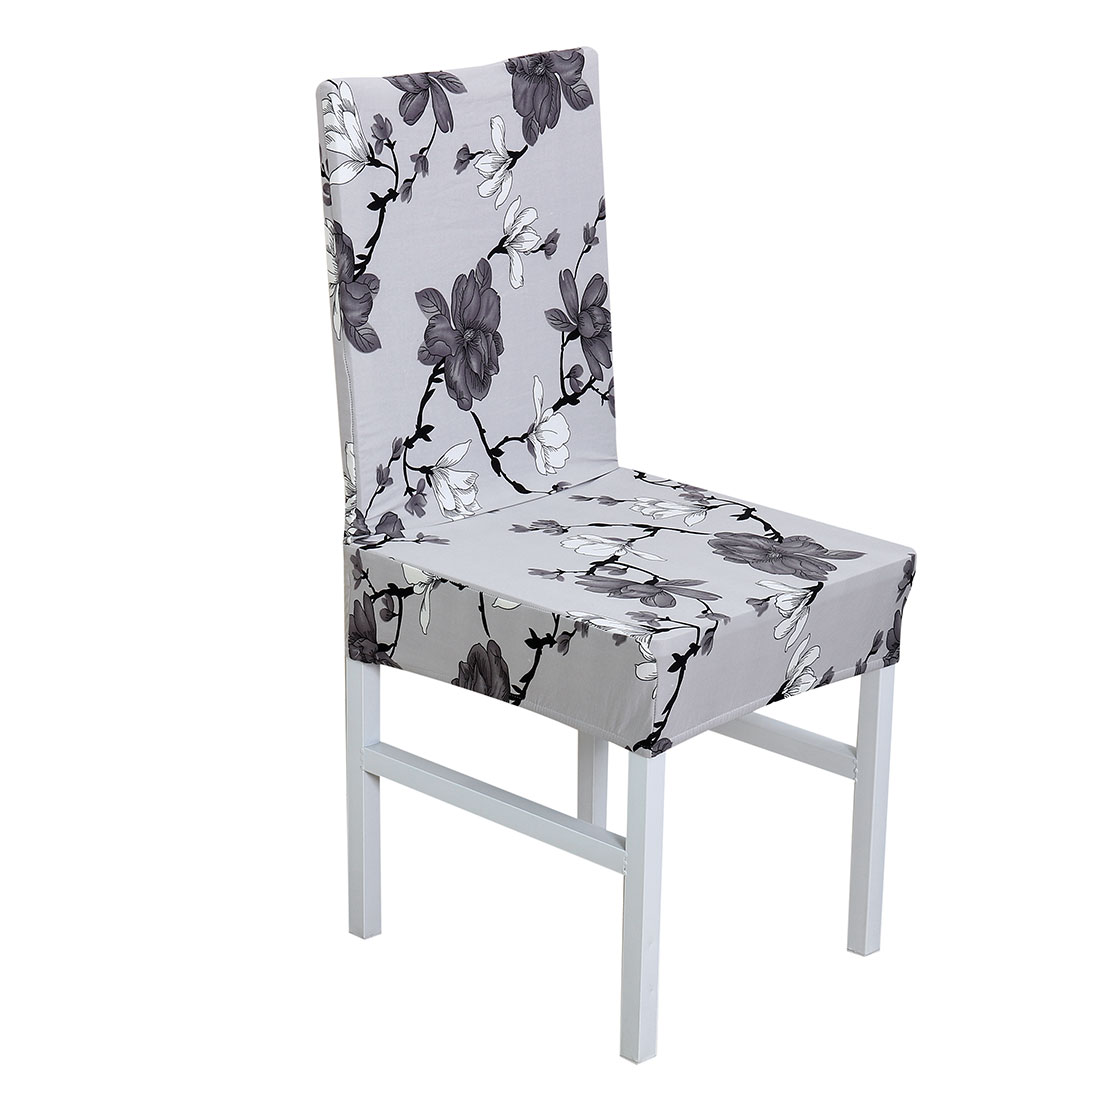 dining room chair covers walmart.ca with footstool sofa & slip covering for home décor   walmart canada